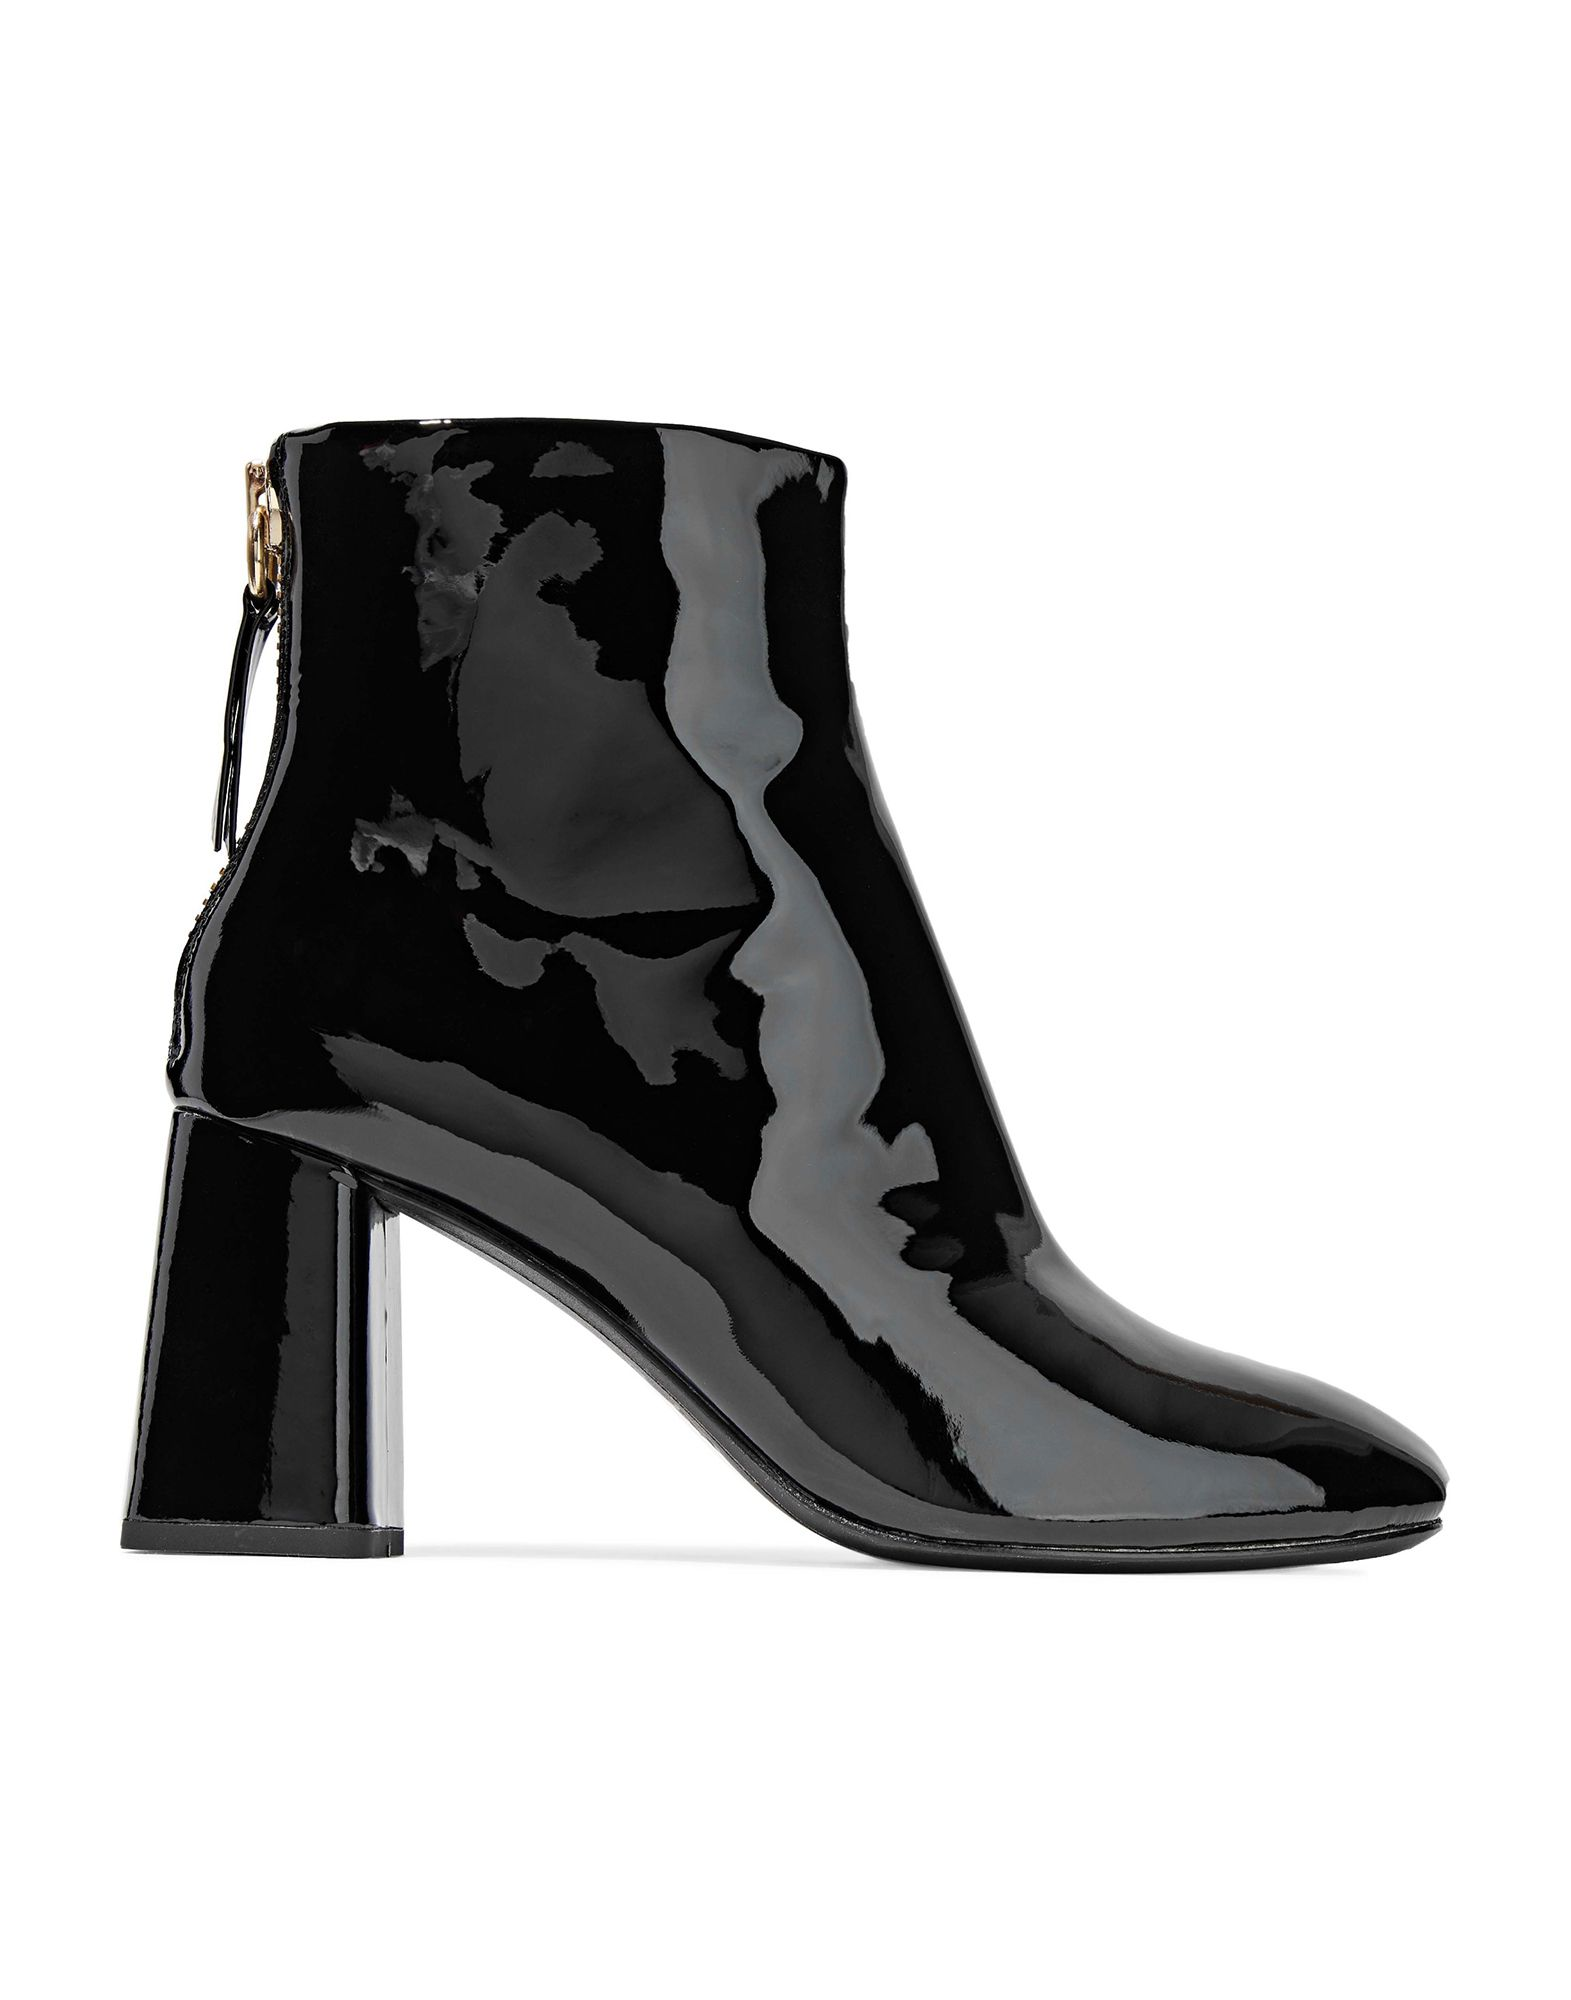 ALICE + OLIVIA Ankle boots. varnished effect, no appliqués, solid color, zipper closure, round toeline, square heel, leather lining, leather sole, contains non-textile parts of animal origin. Soft Leather